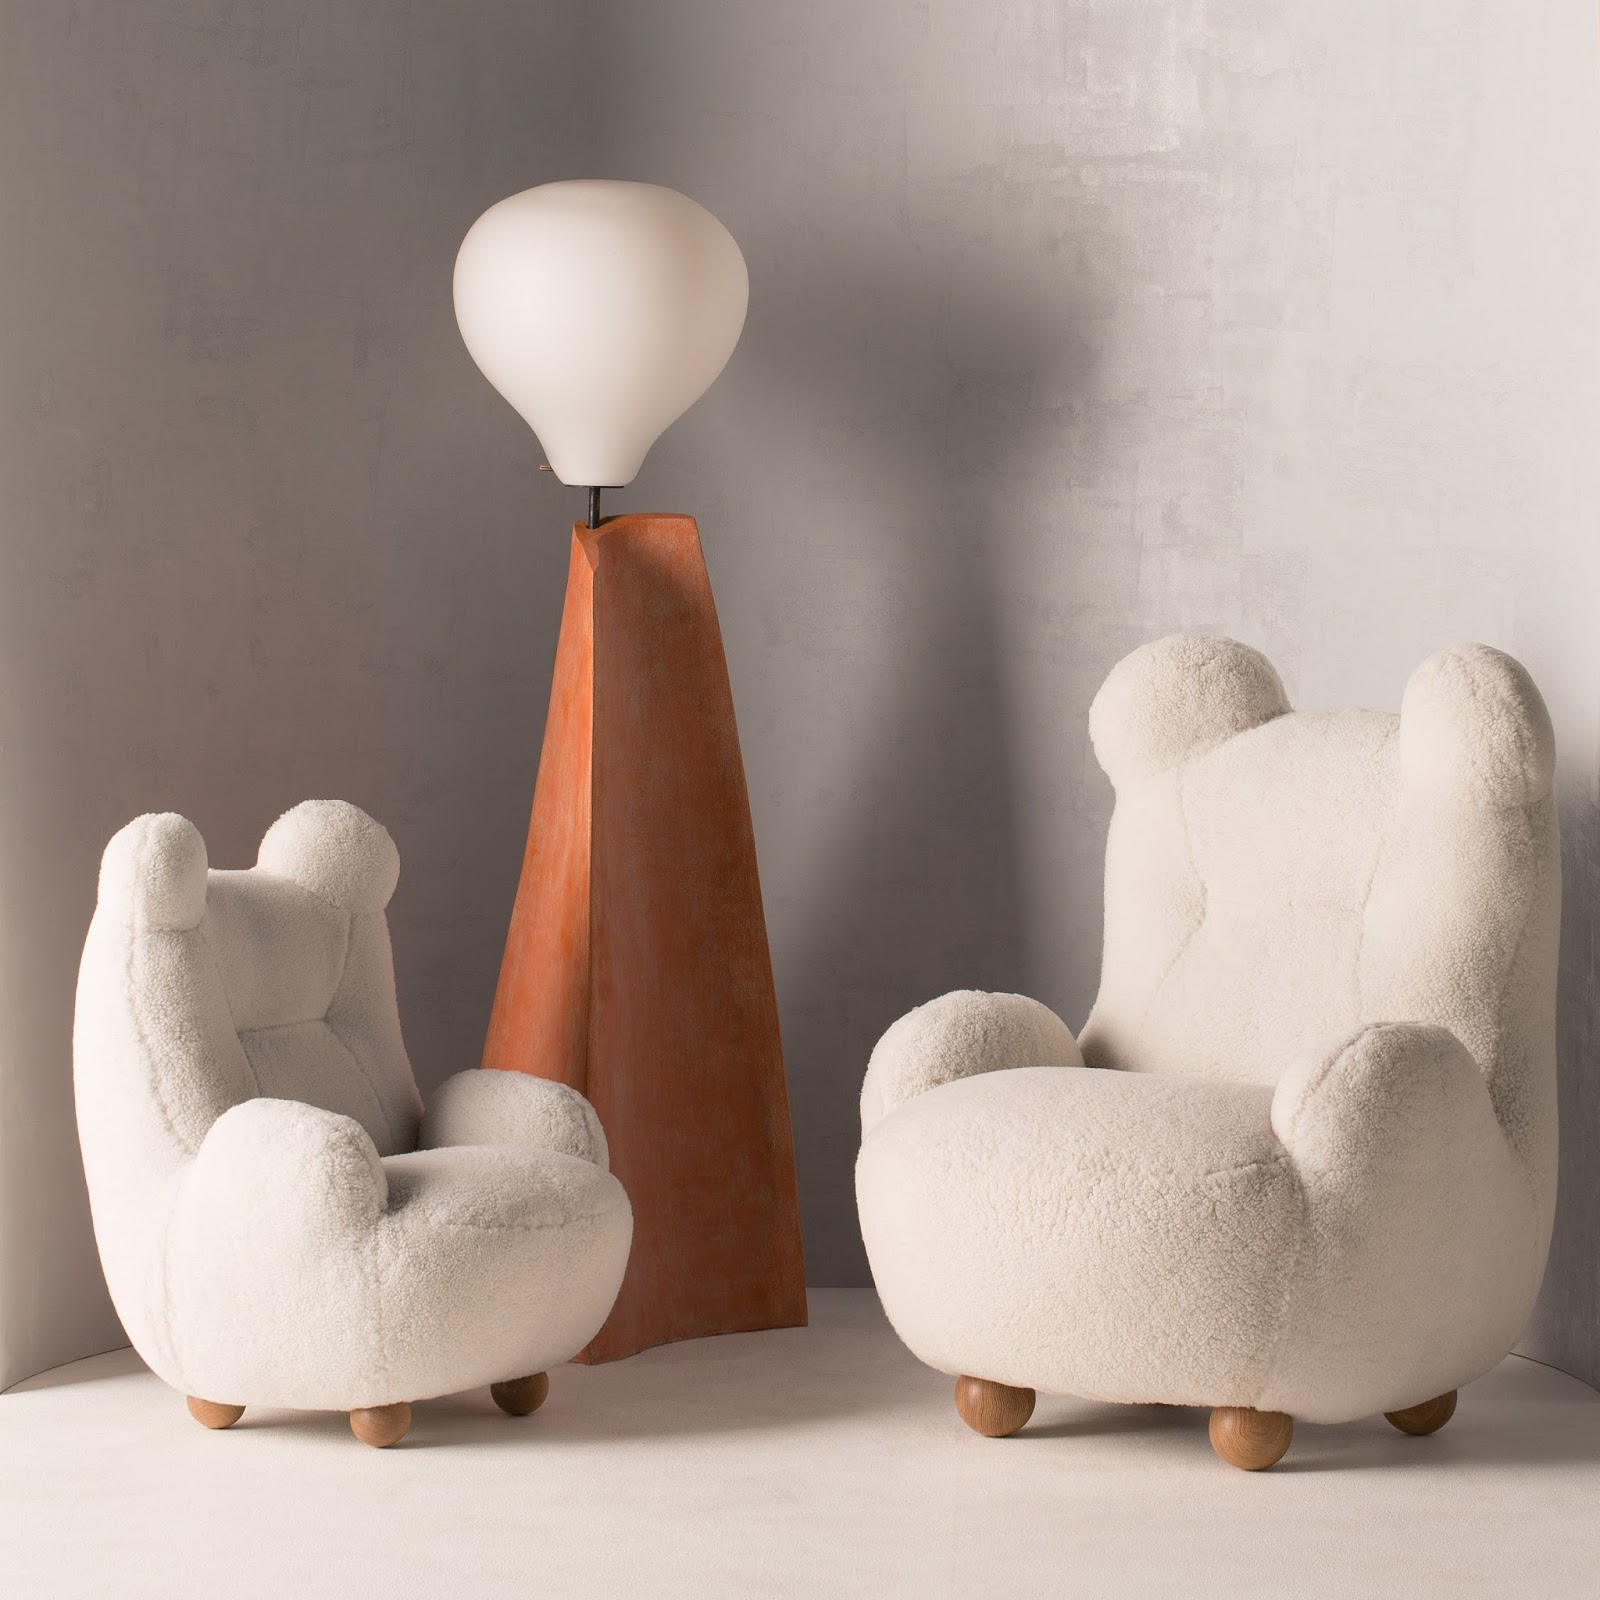 Amm Blog A Collection Of Furniture That Resembles Cuddly